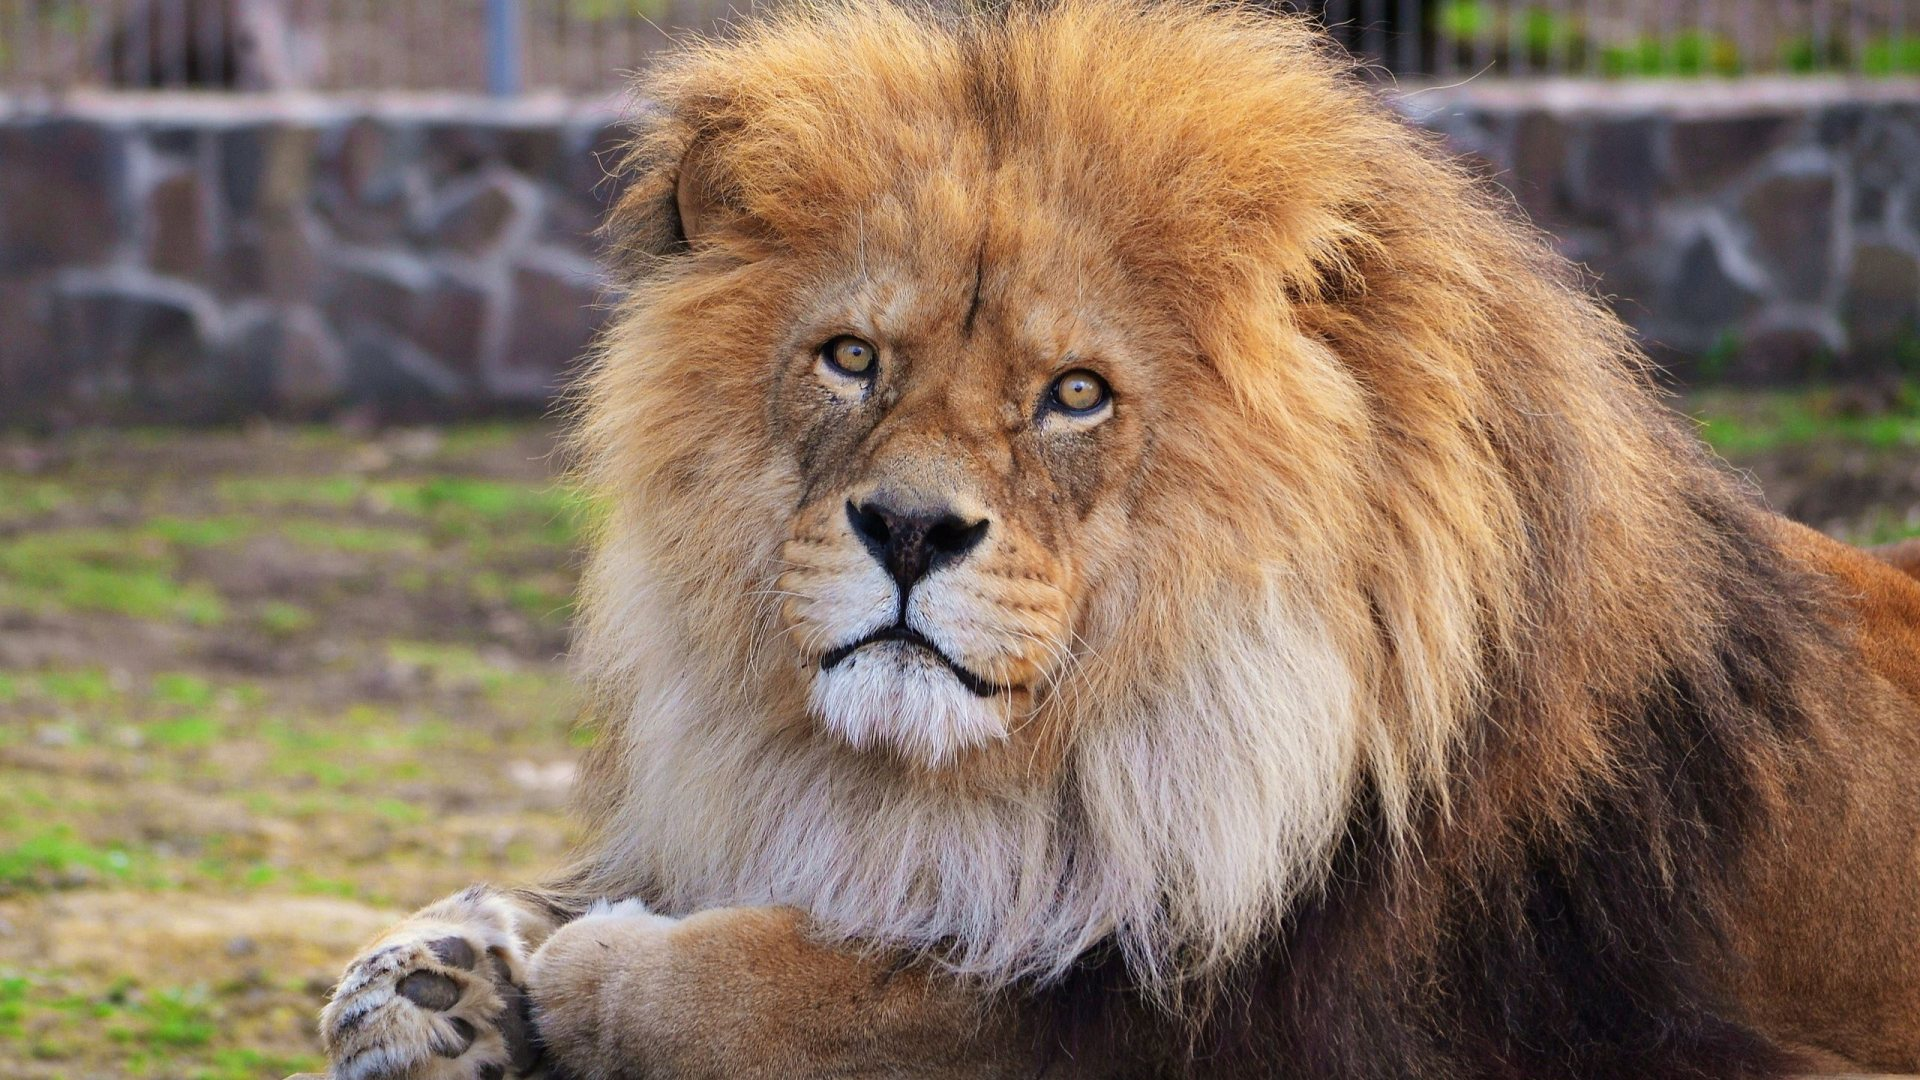 Hd Lion Pictures Lions Wallpapers: Lion HD Wallpapers 1080p